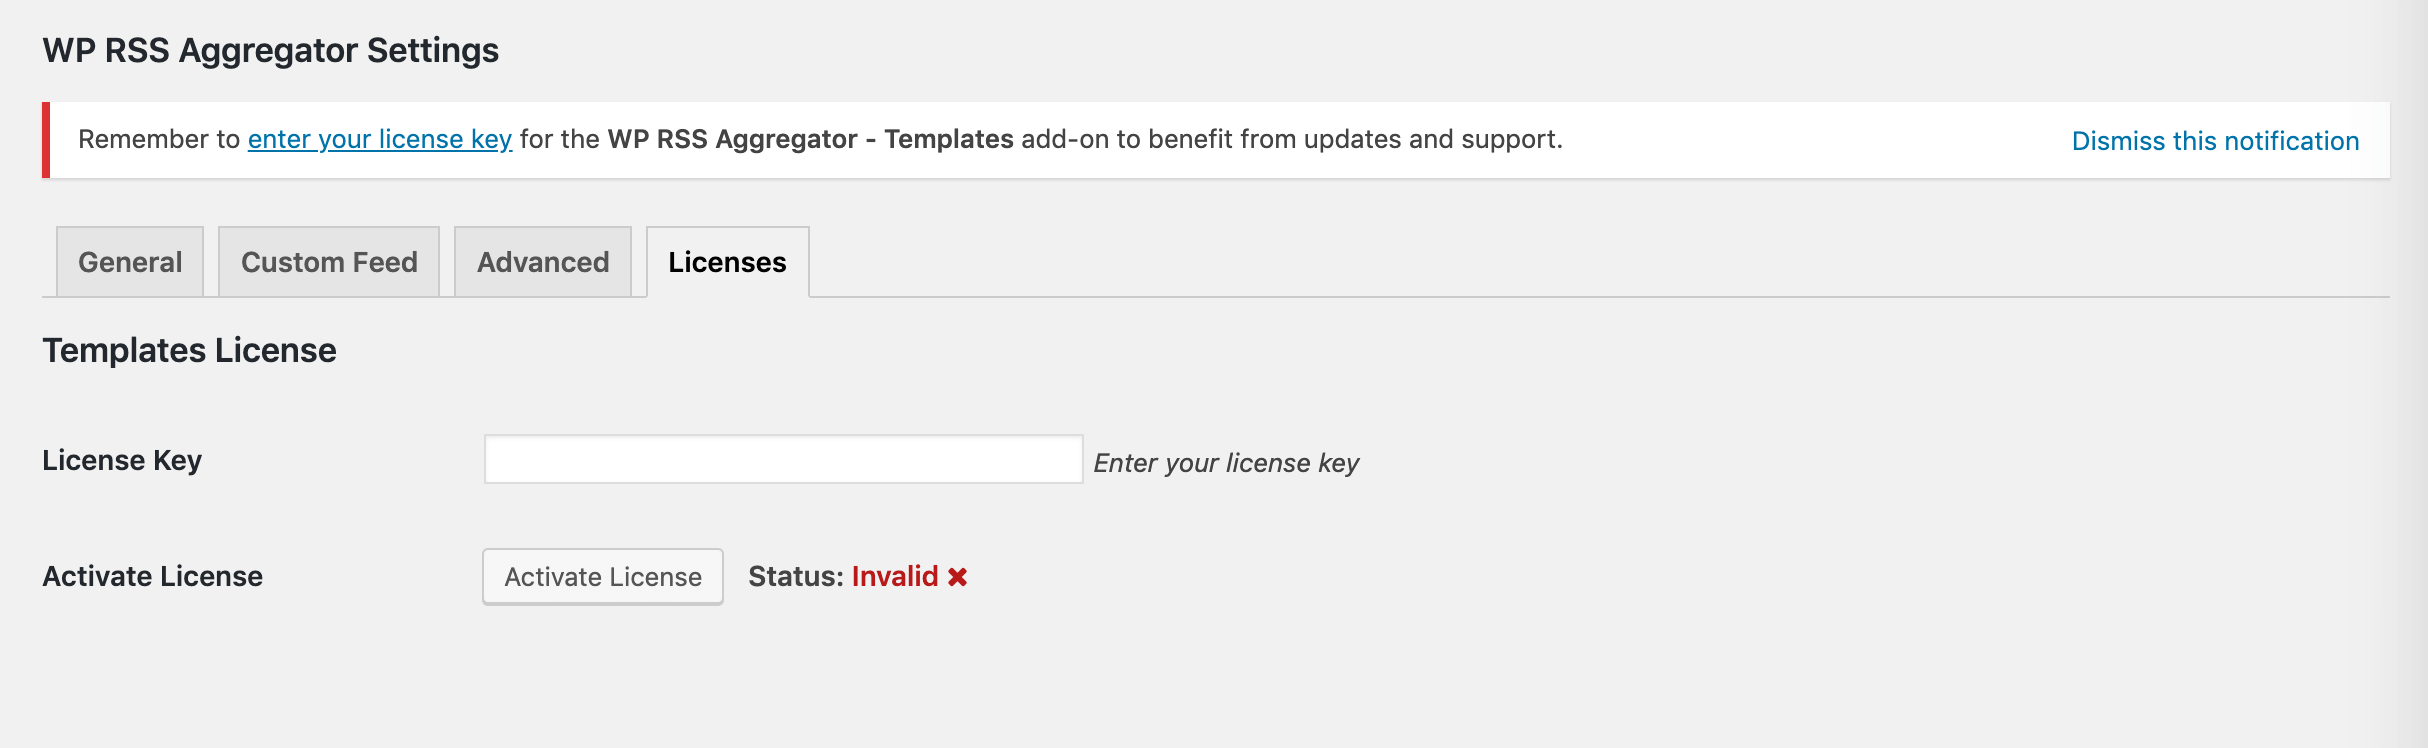 Entering the Templates license key.